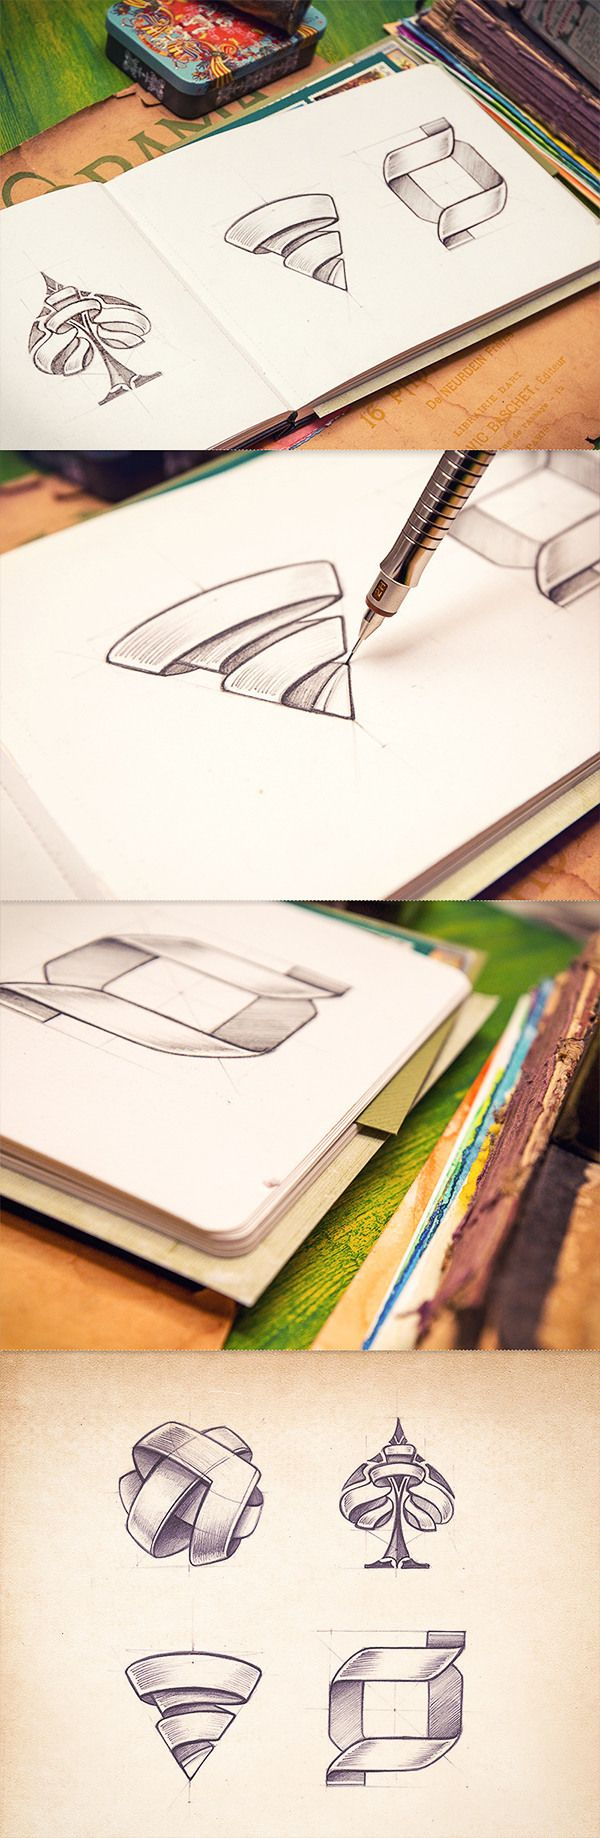 Sketchbook by Mike   Illustration by Michael Dachstein